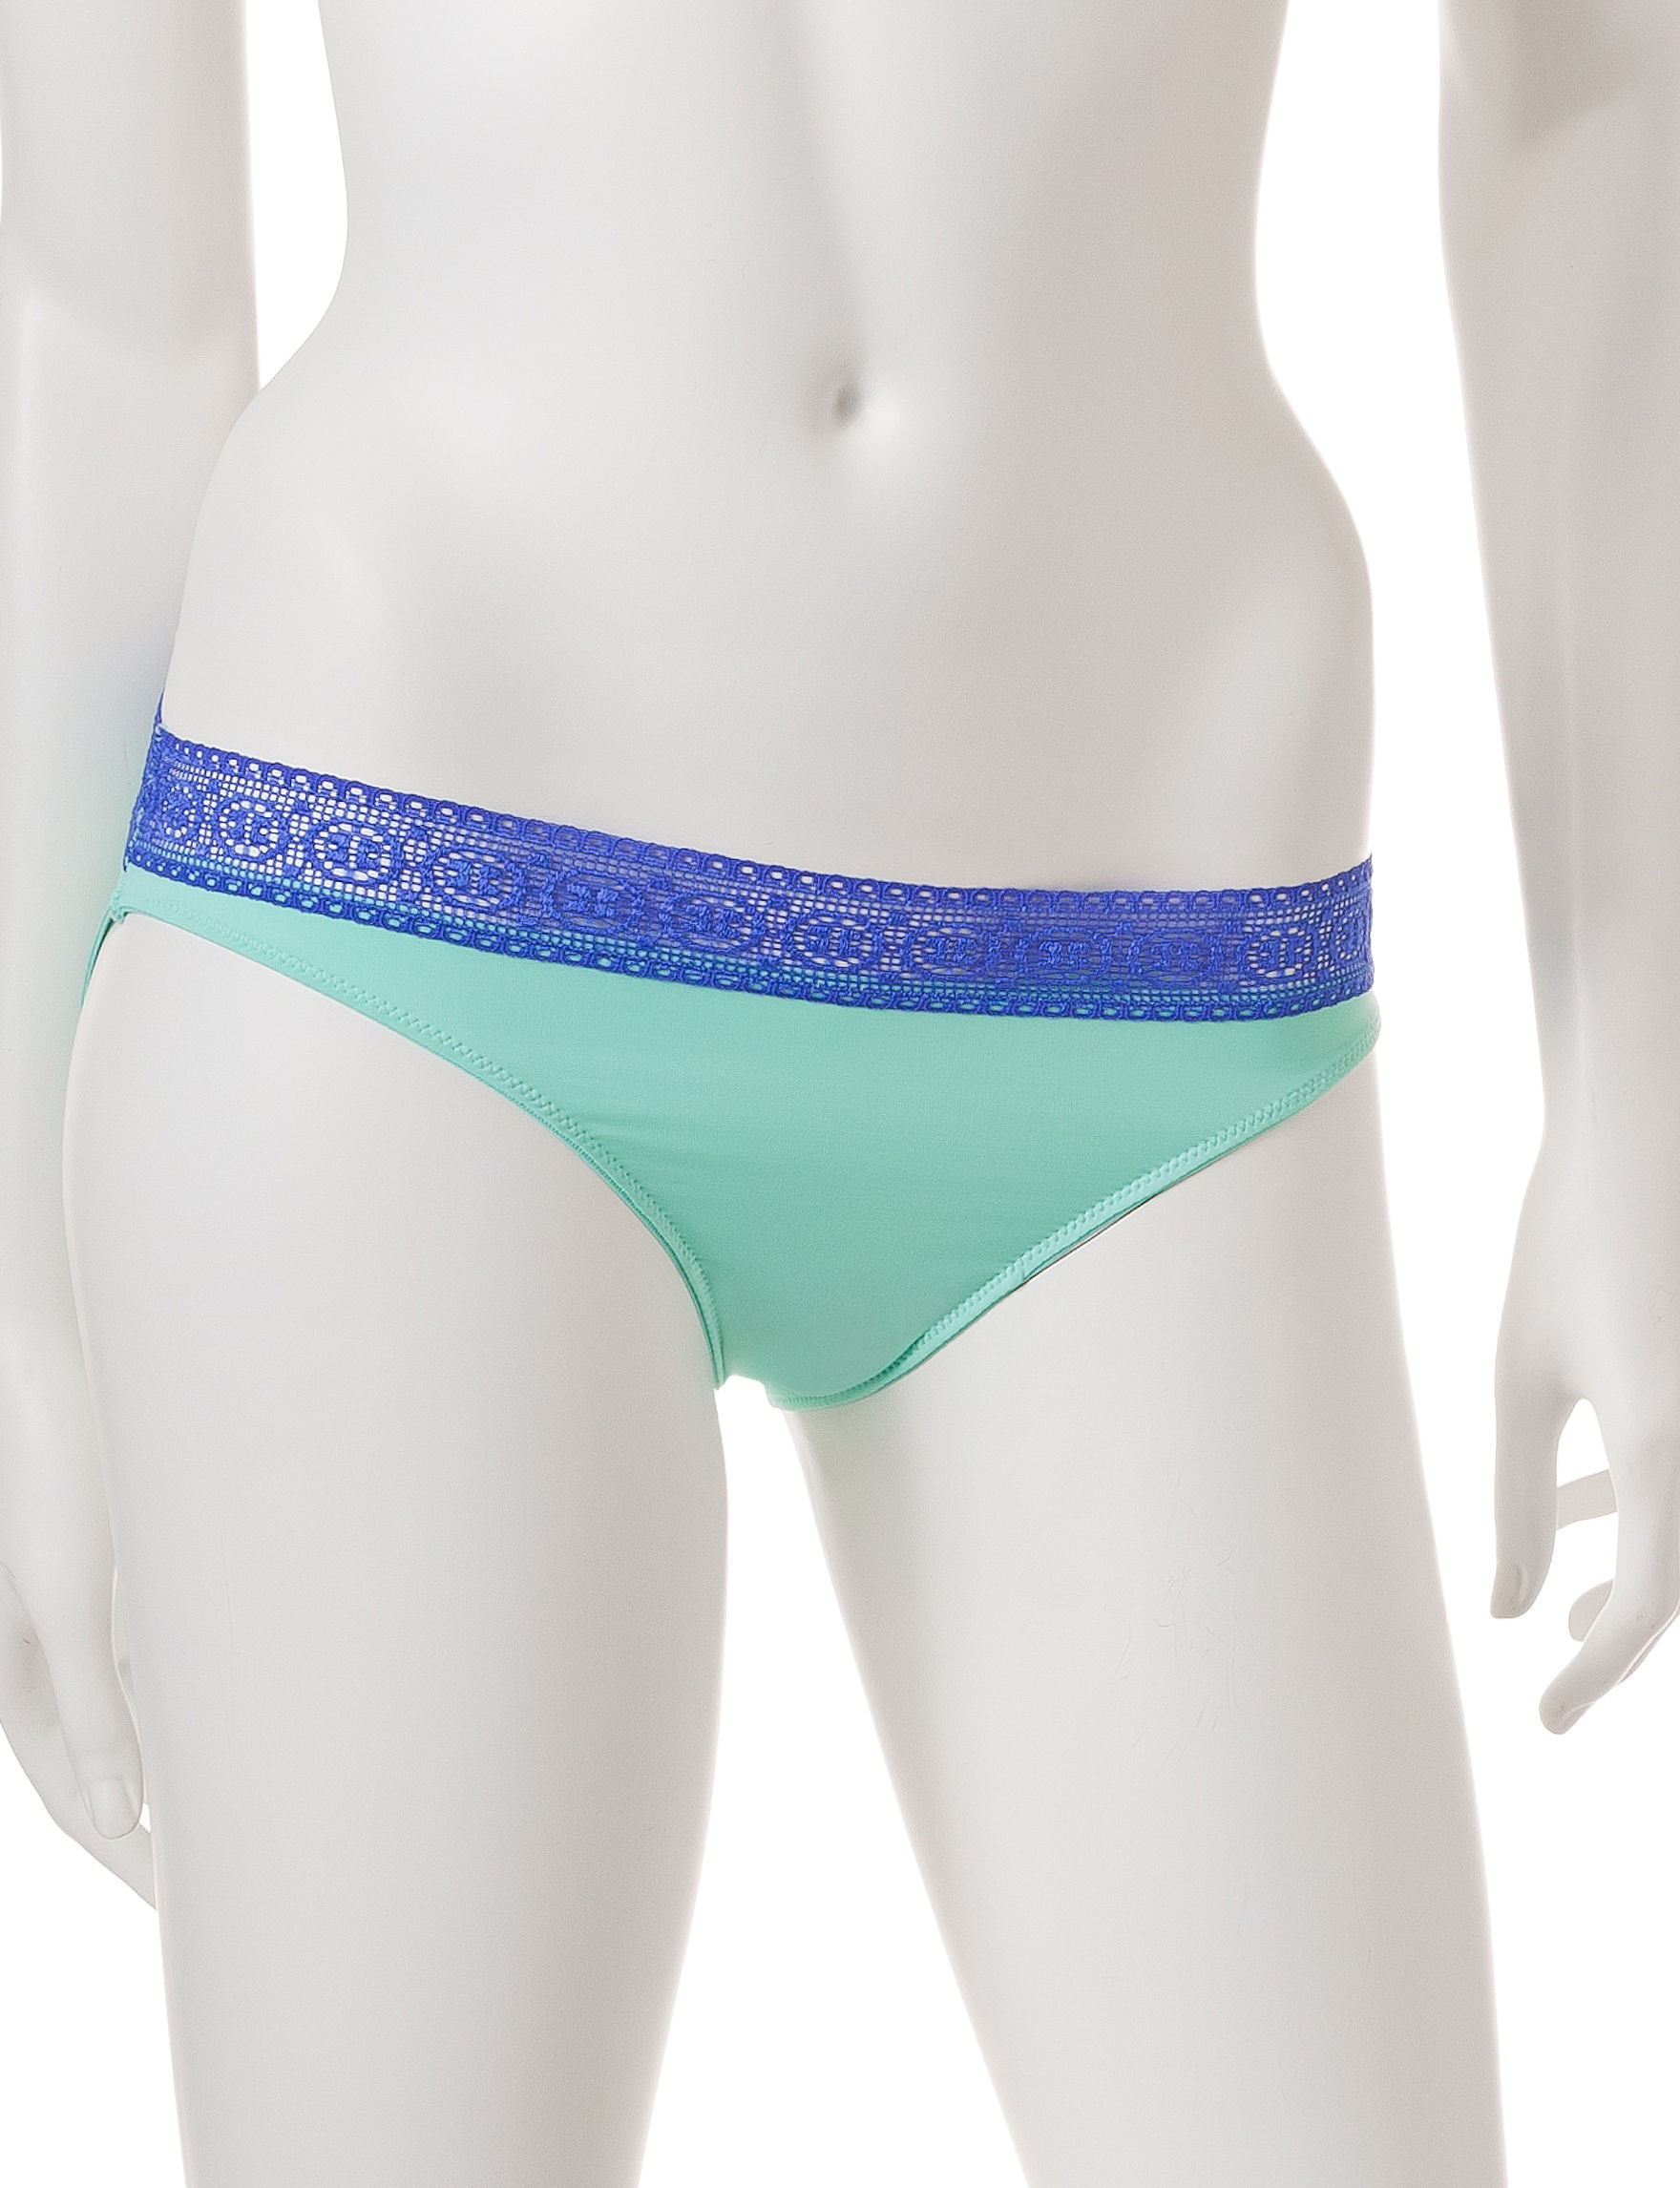 B Intimates Mint Panties Bikini